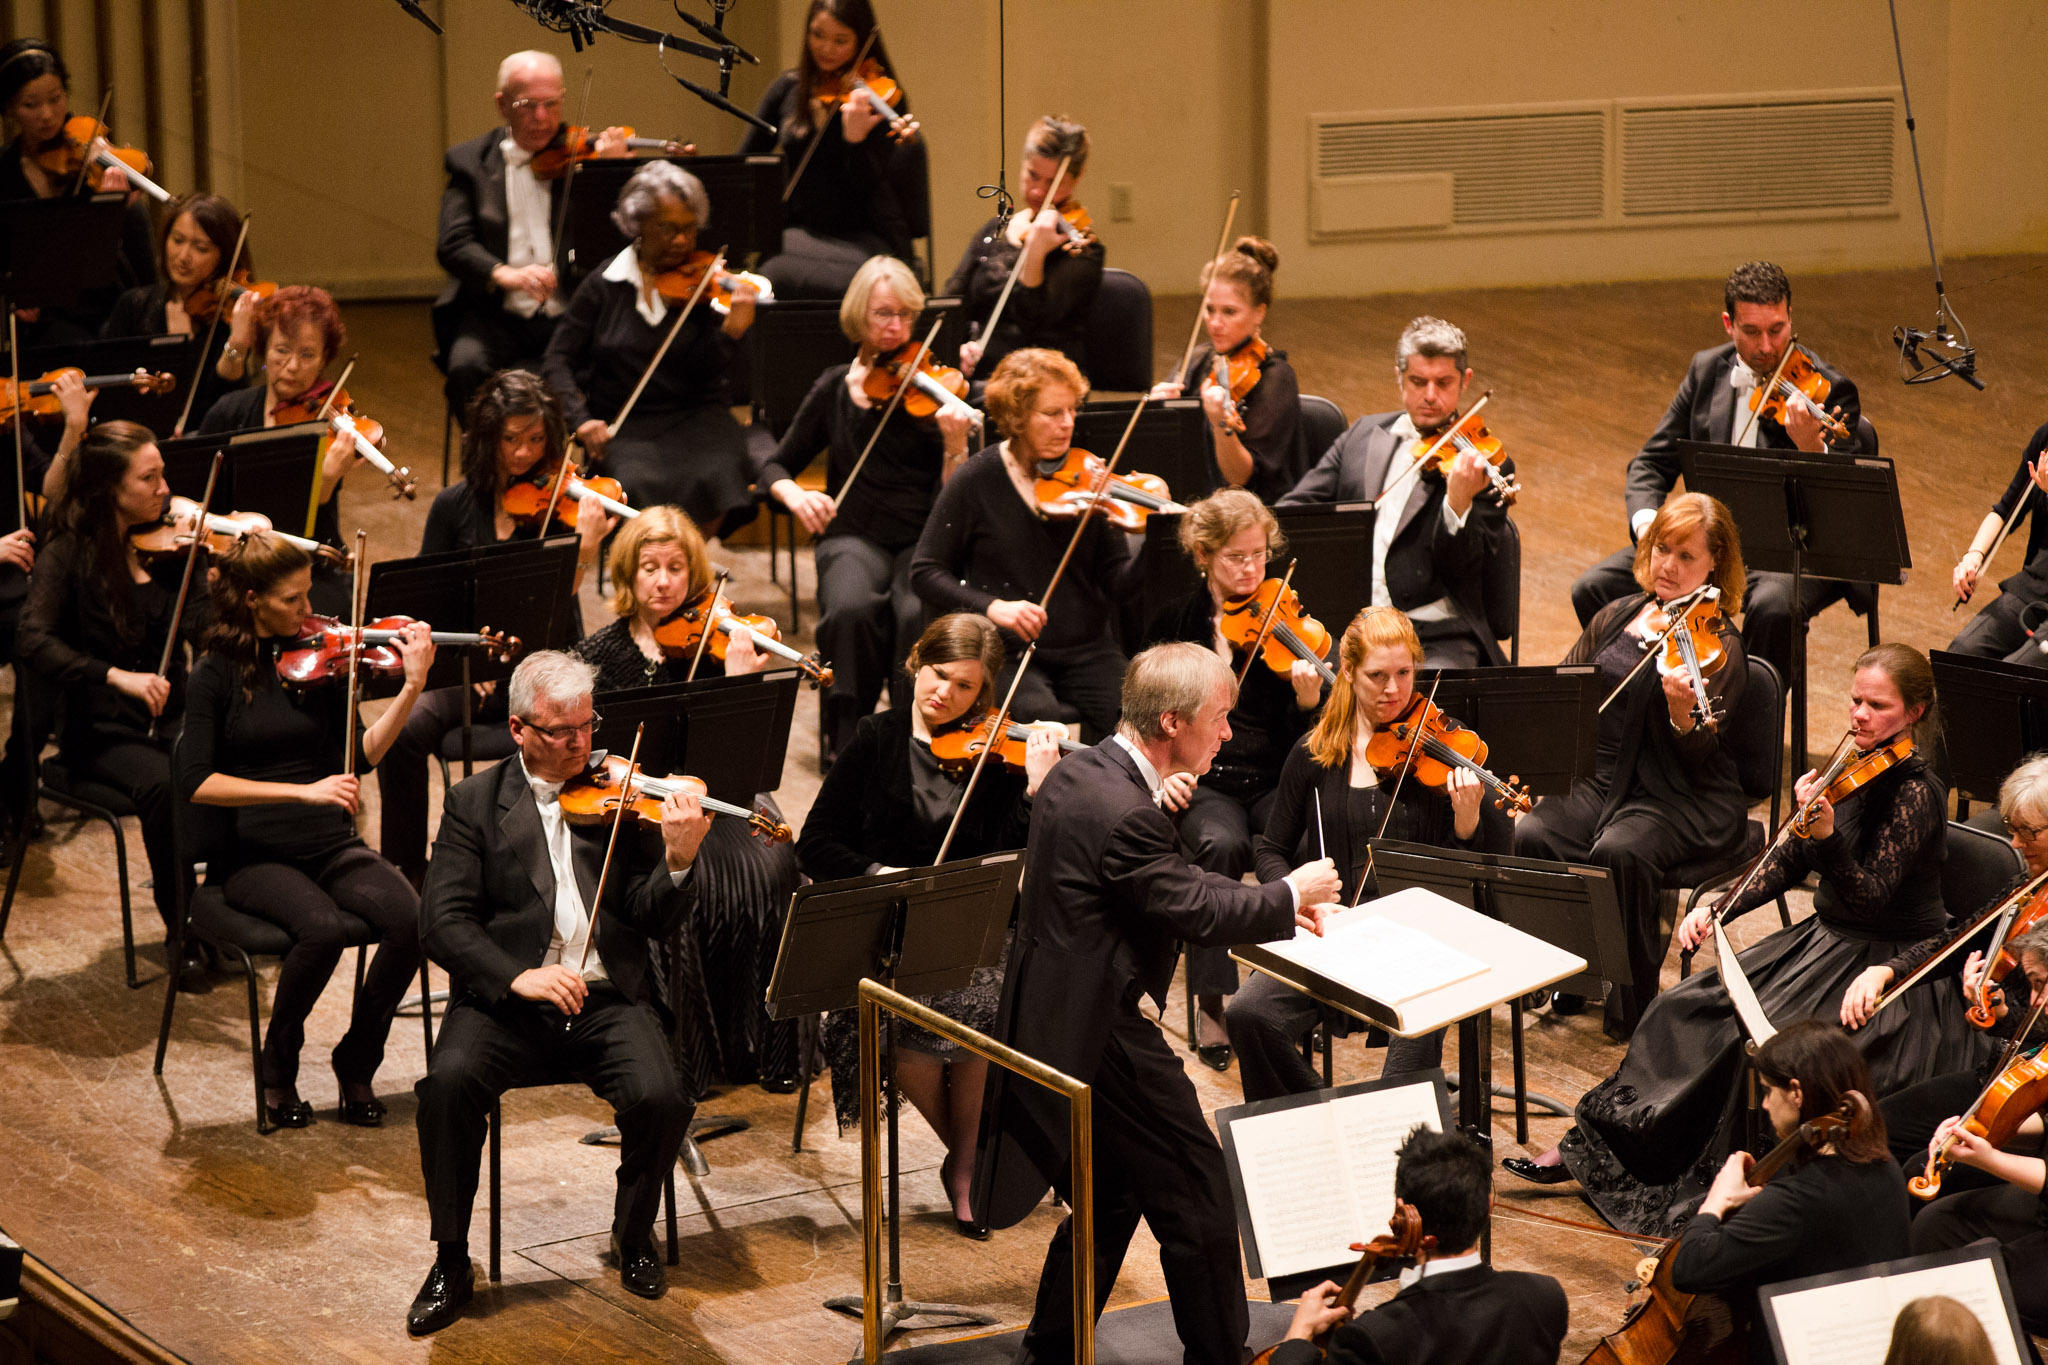 st louis symphony signs 5 year contract with musicians ahead of